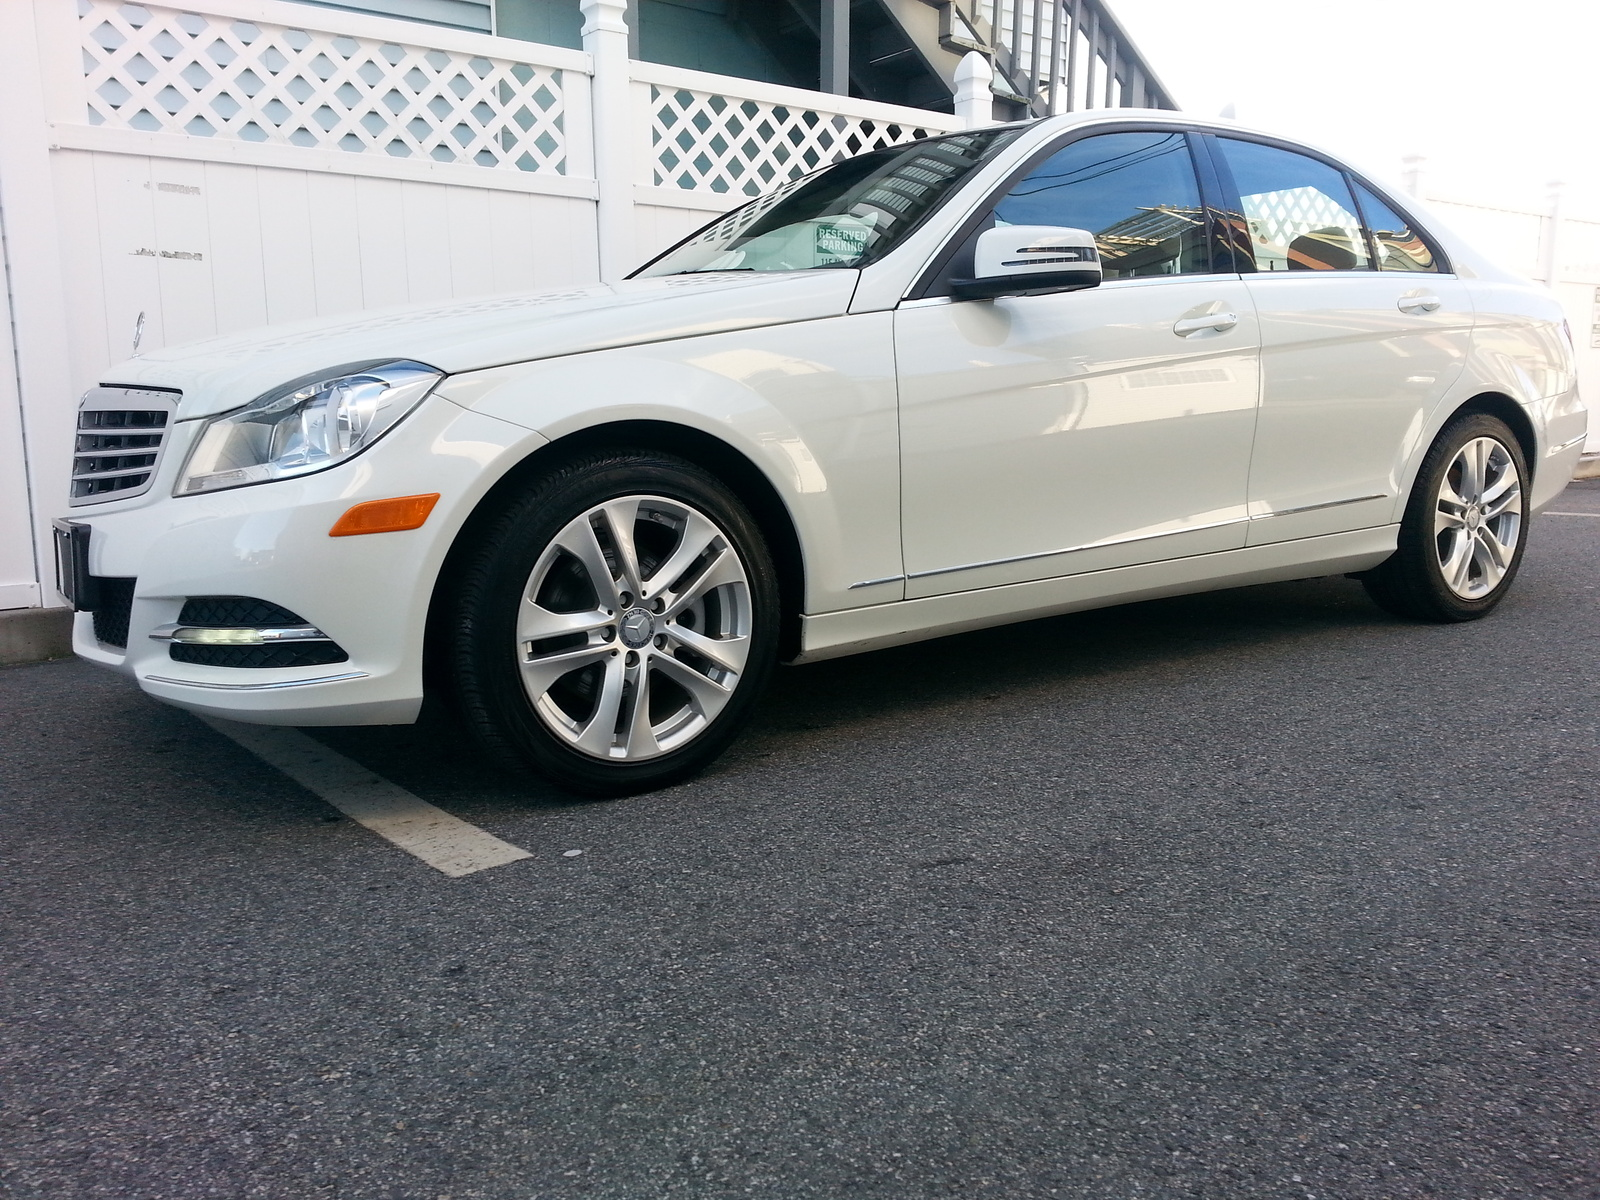 Picture of 2012 mercedes benz c class c300 luxury 4matic for 2012 mercedes benz c class